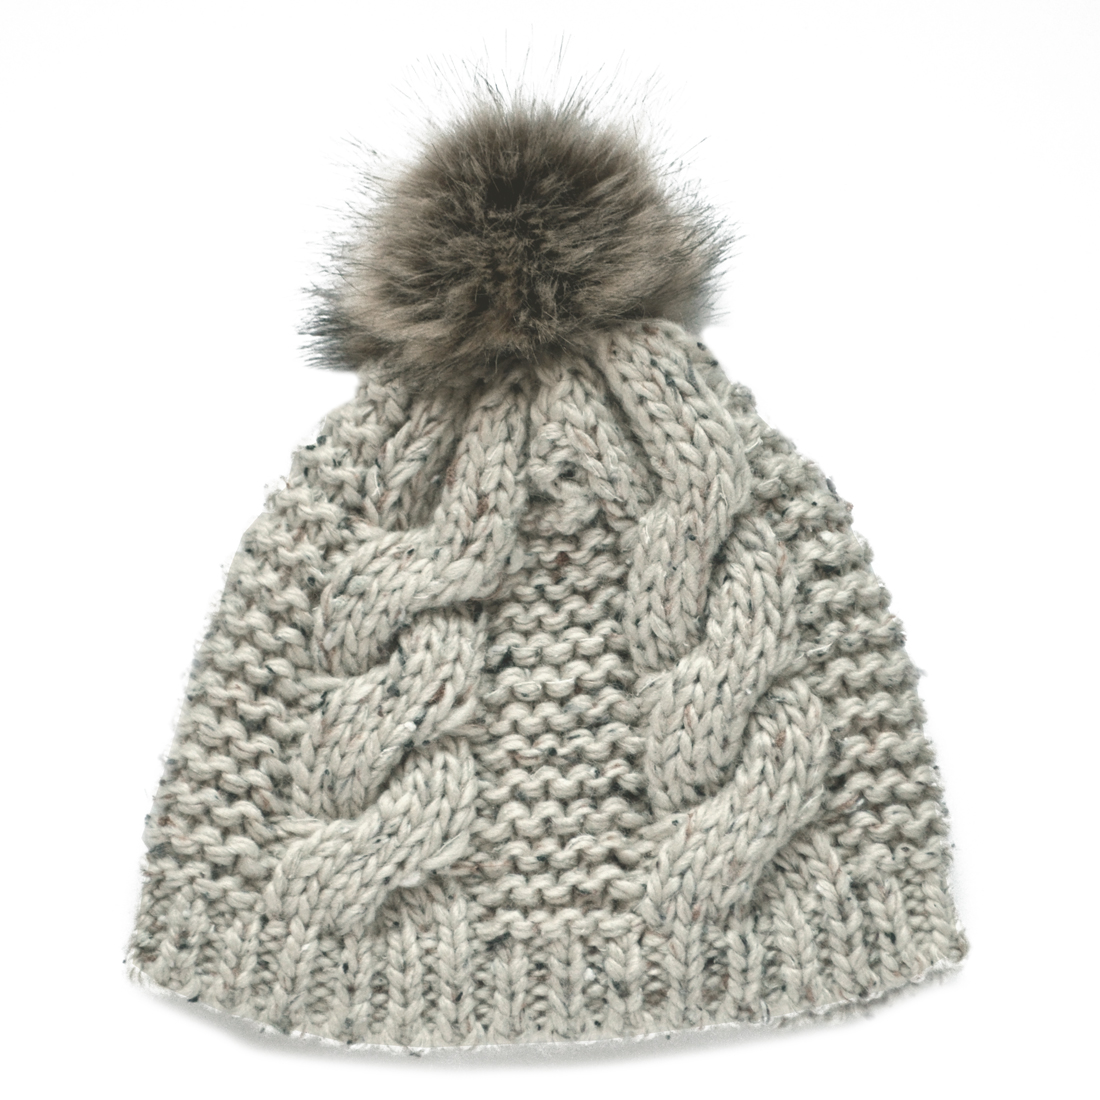 7d066dca7d6 Details about New Fur Bobble Knit Hat Ladies Oatmeal Fleck from Ireland